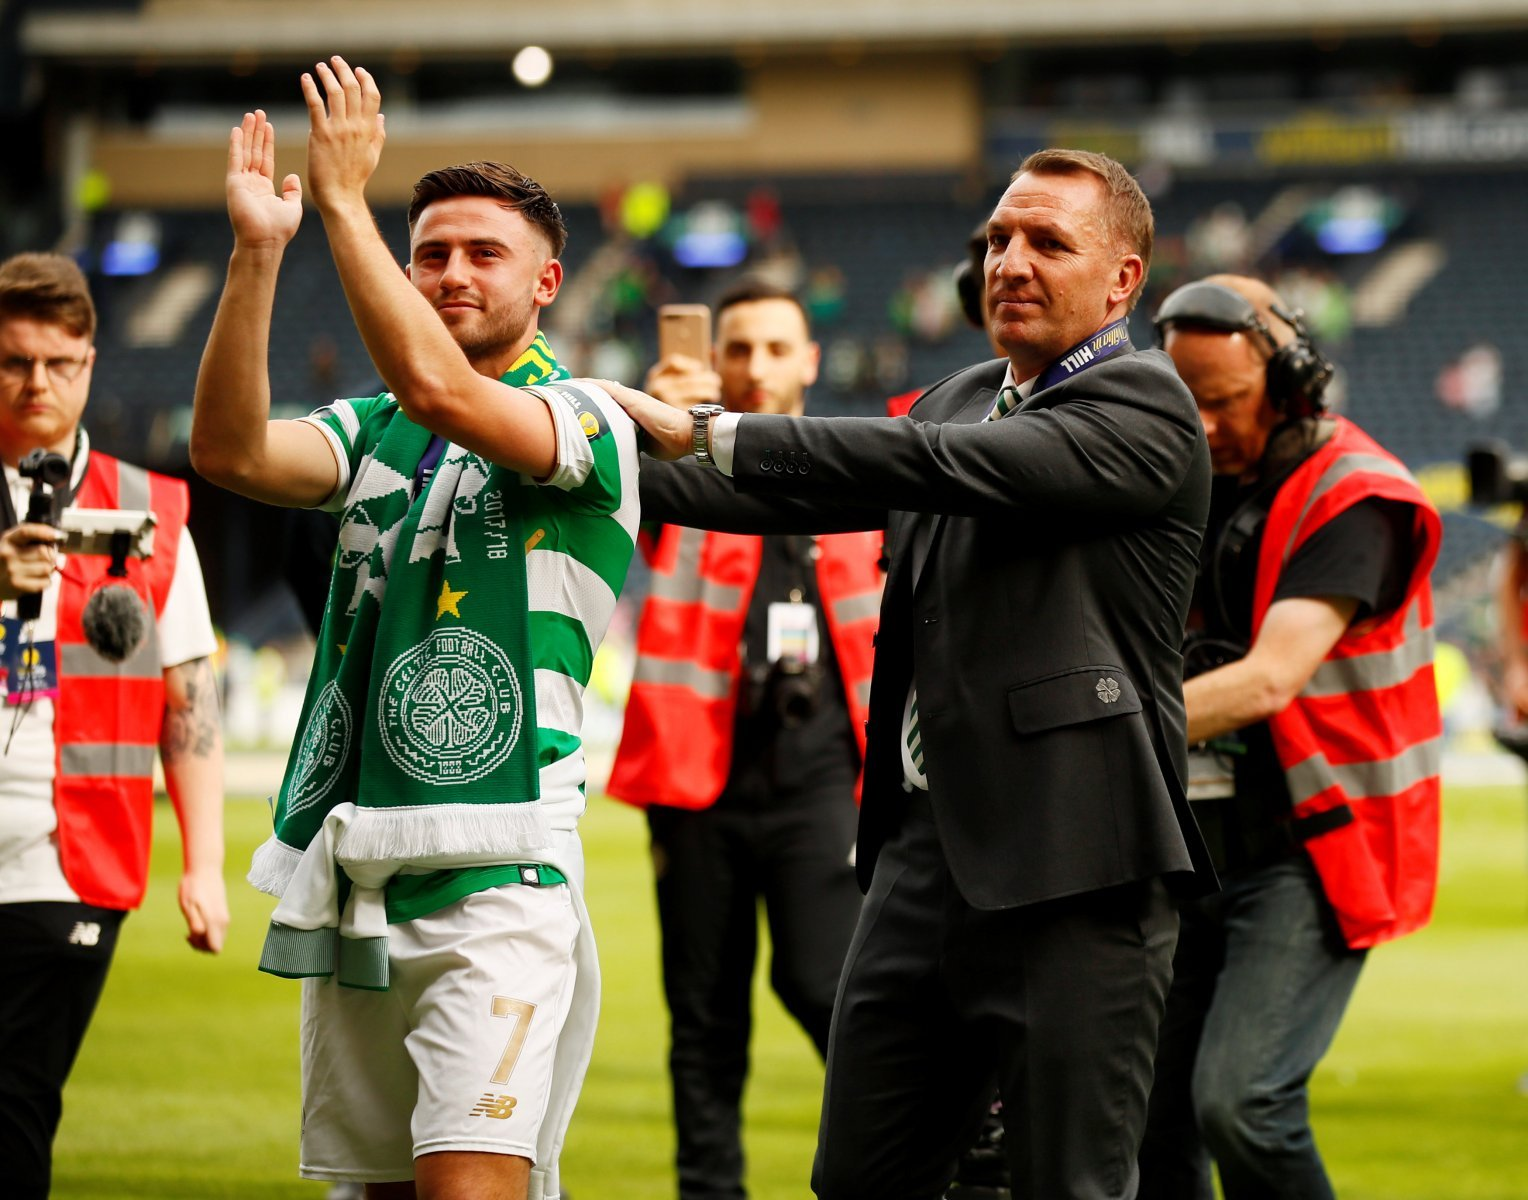 Introducing: The talent Brendan Rodgers must reunite with at Leicester, Patrick Roberts